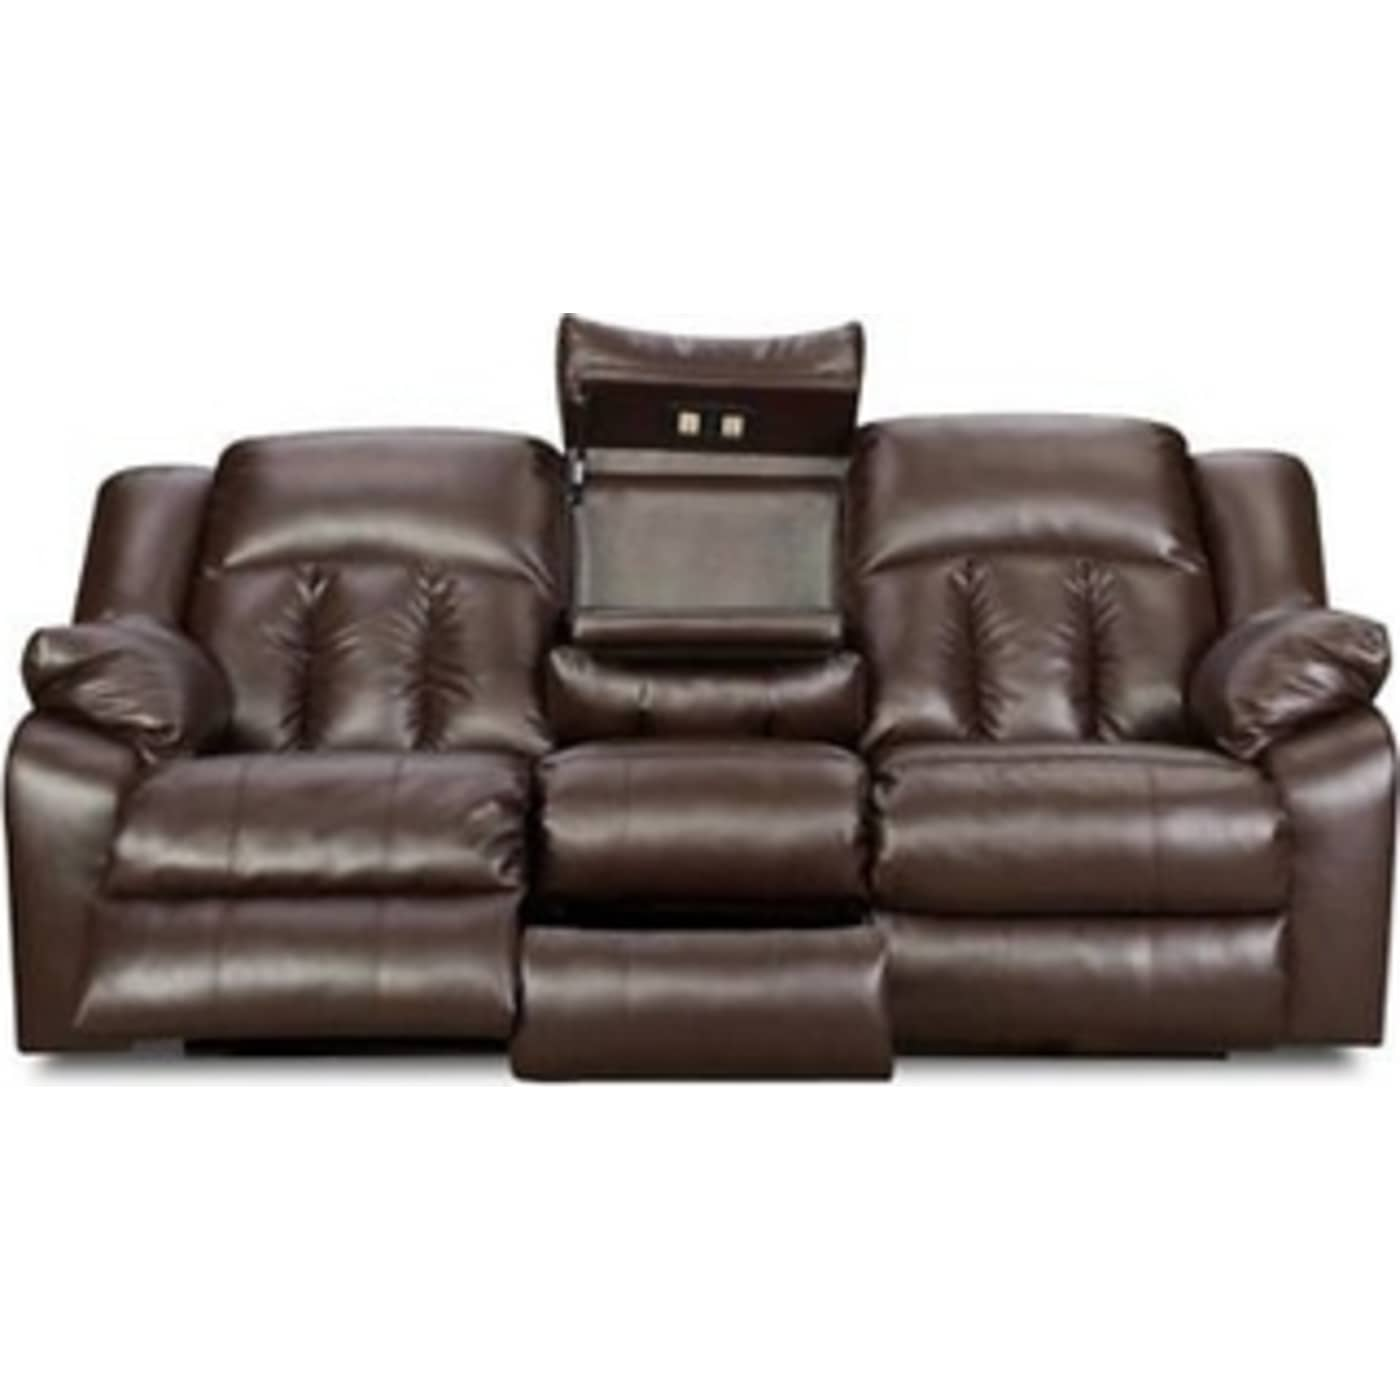 Simmons Upholstery Sebring Coffeebean Bonded Leather